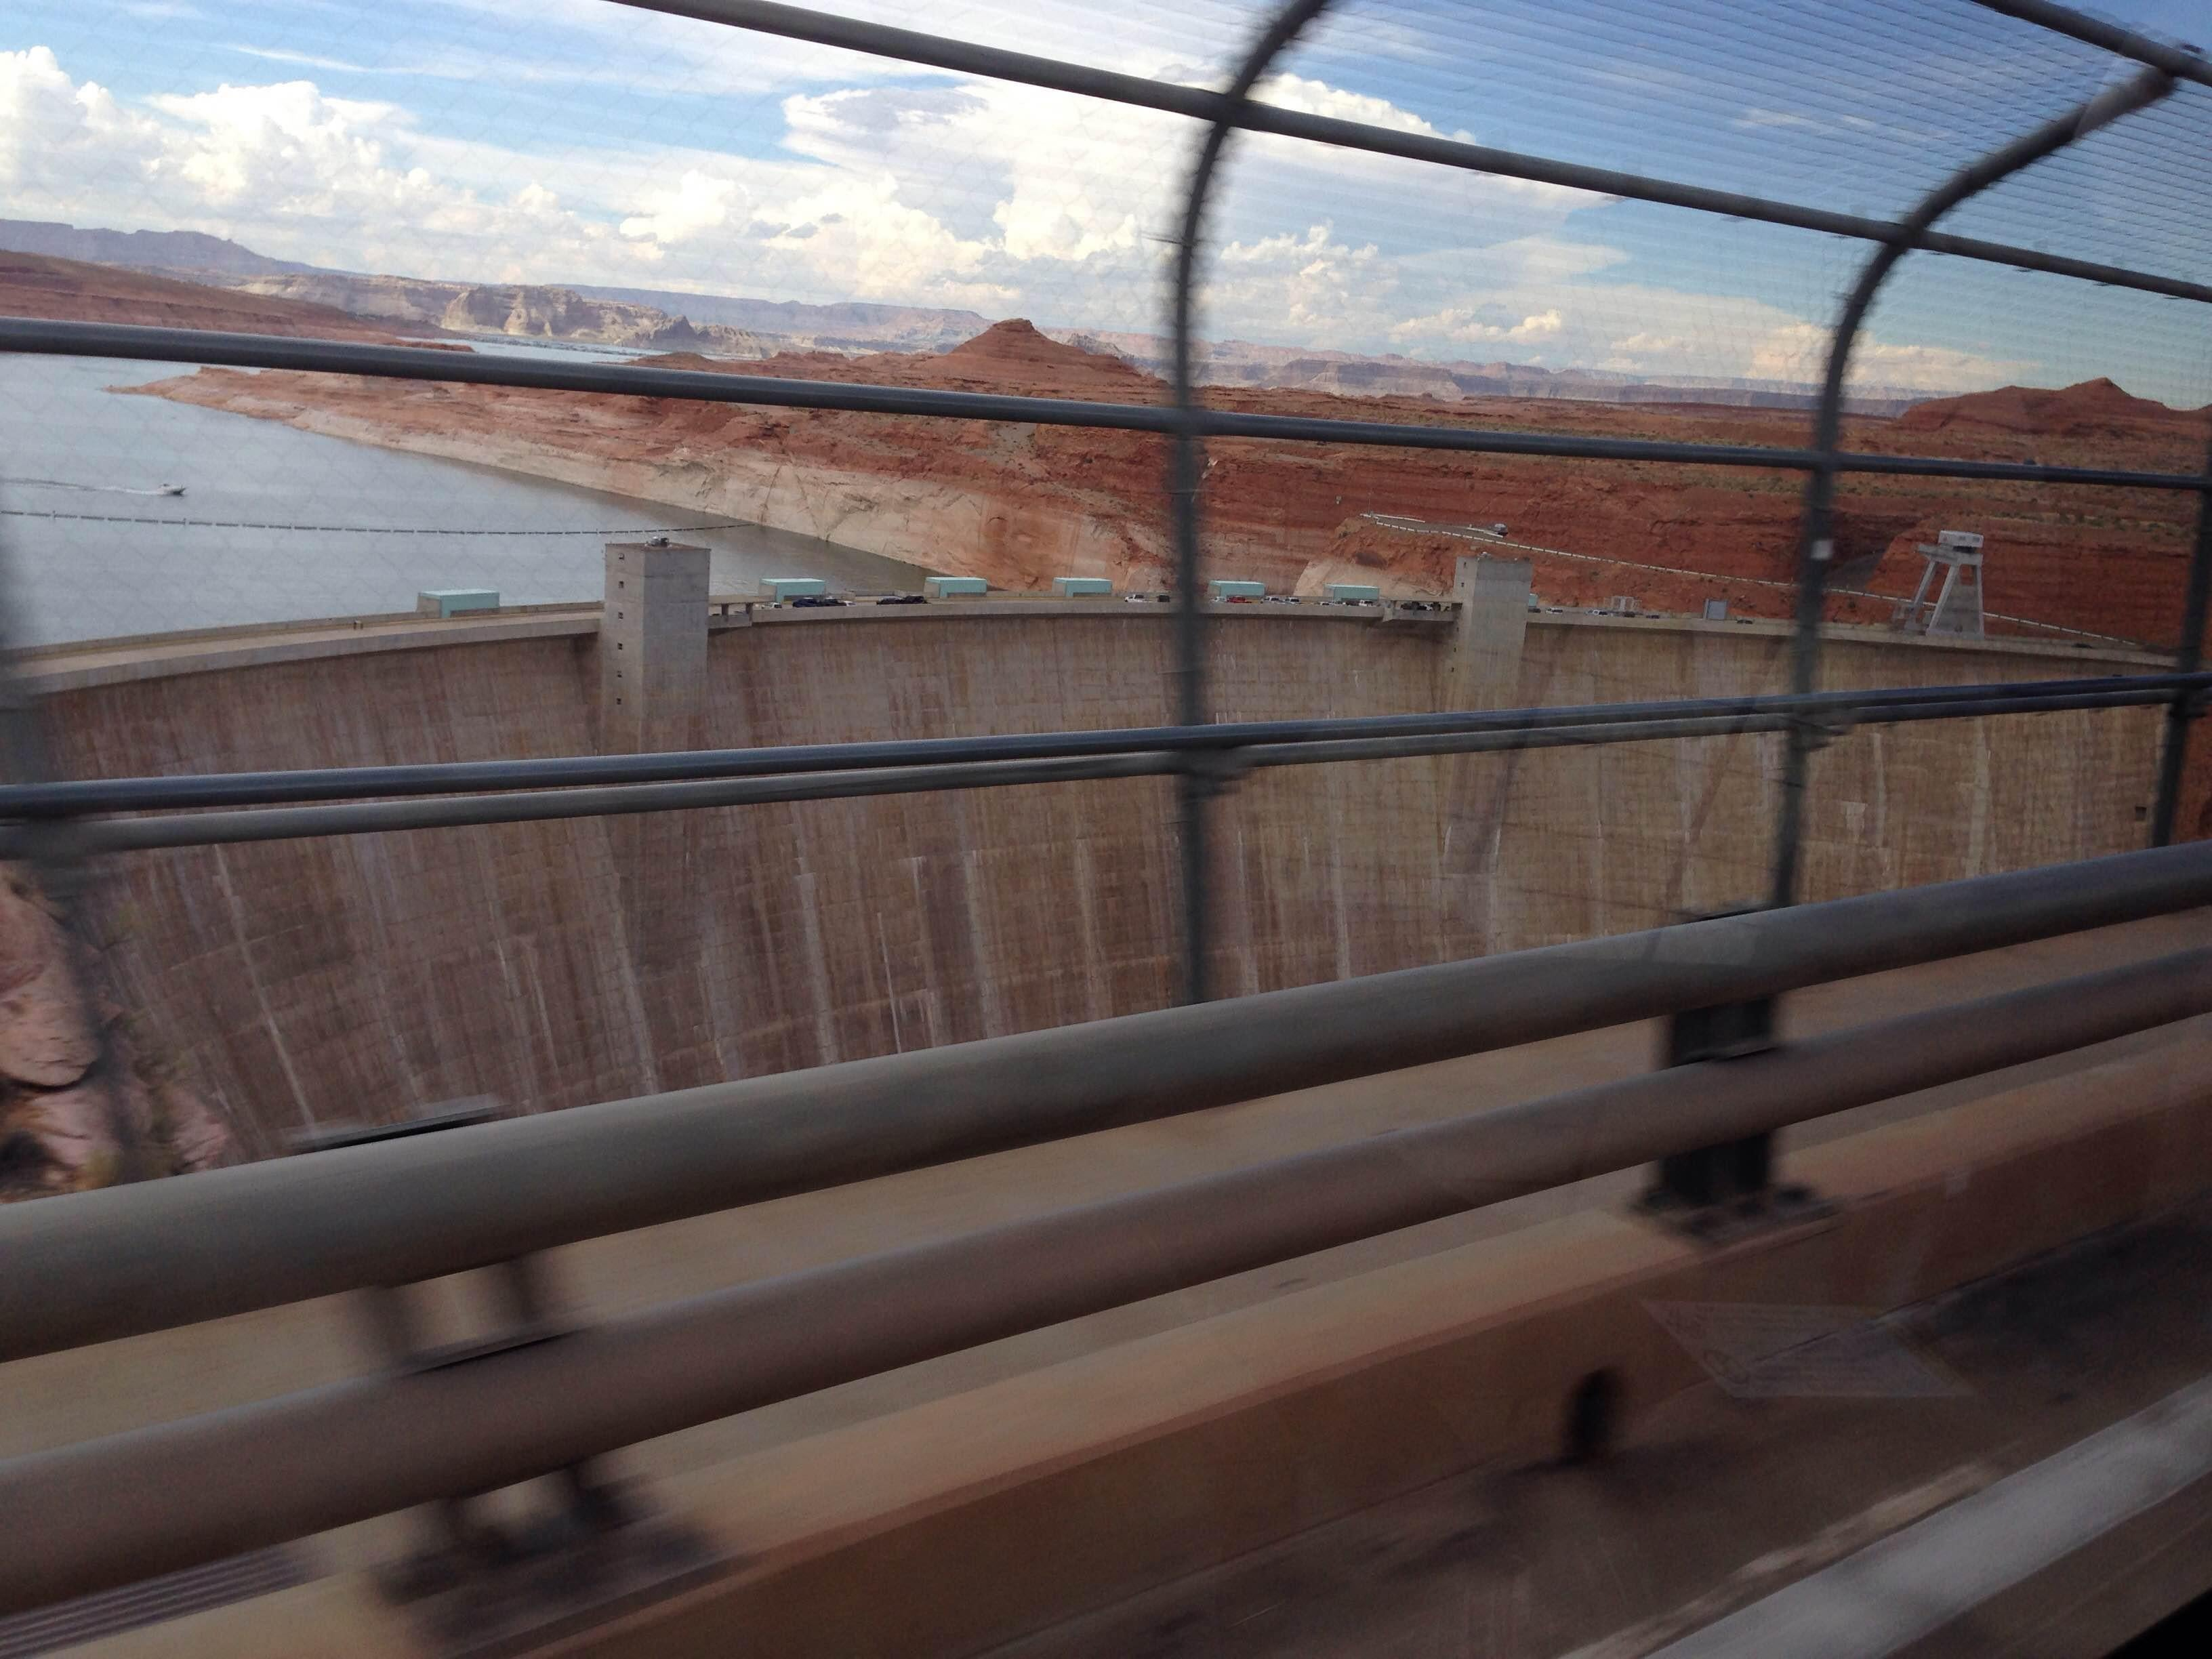 Pasamano en Glen Canyon Bridge